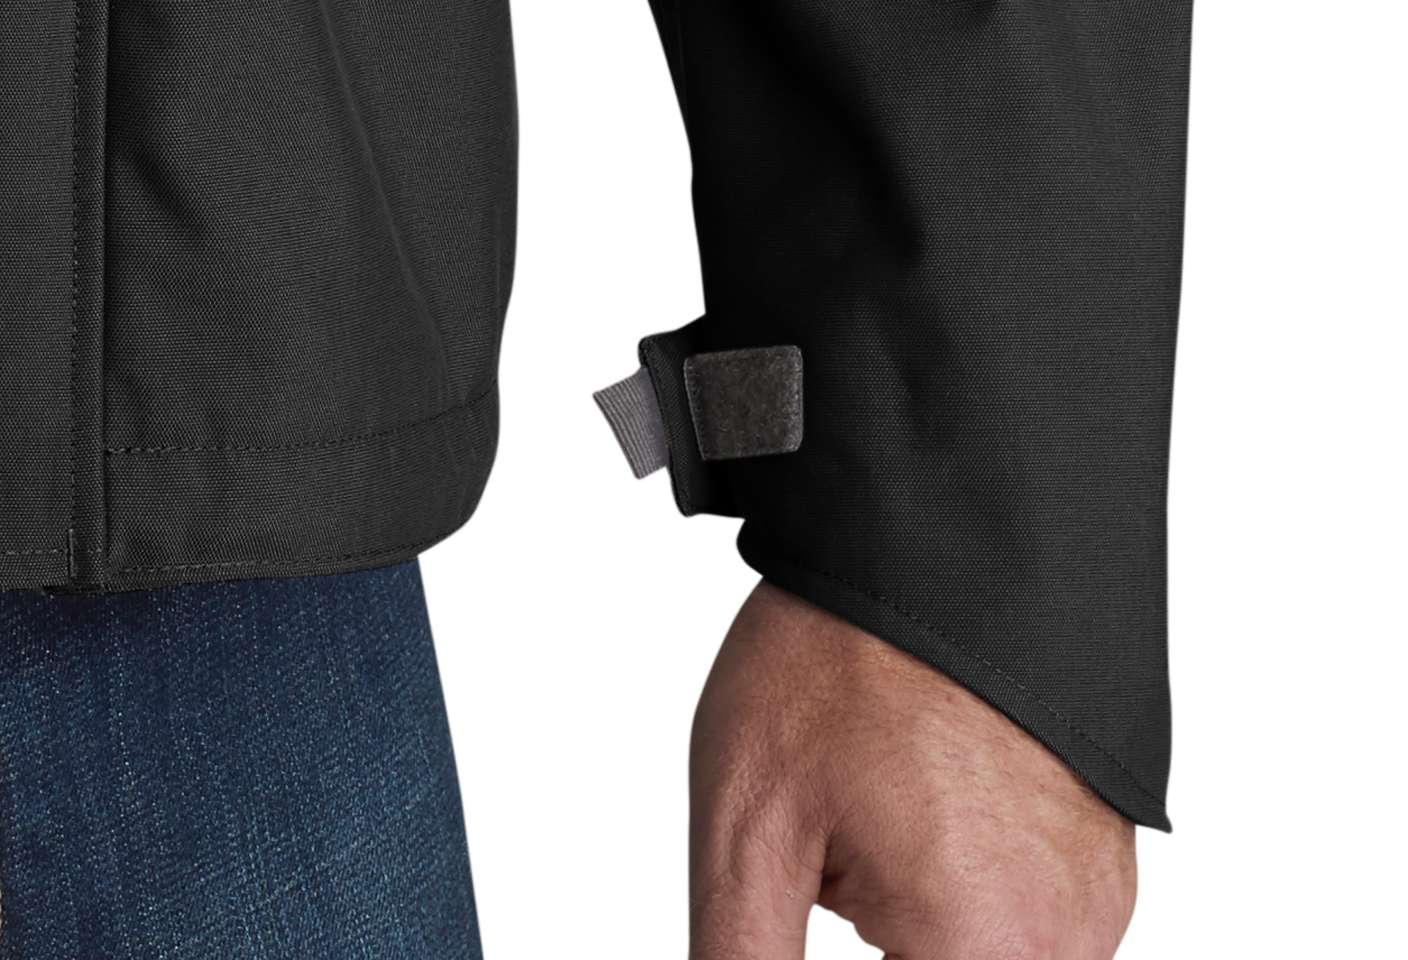 Internal rib-knit storm cuffs keep out cold and wet